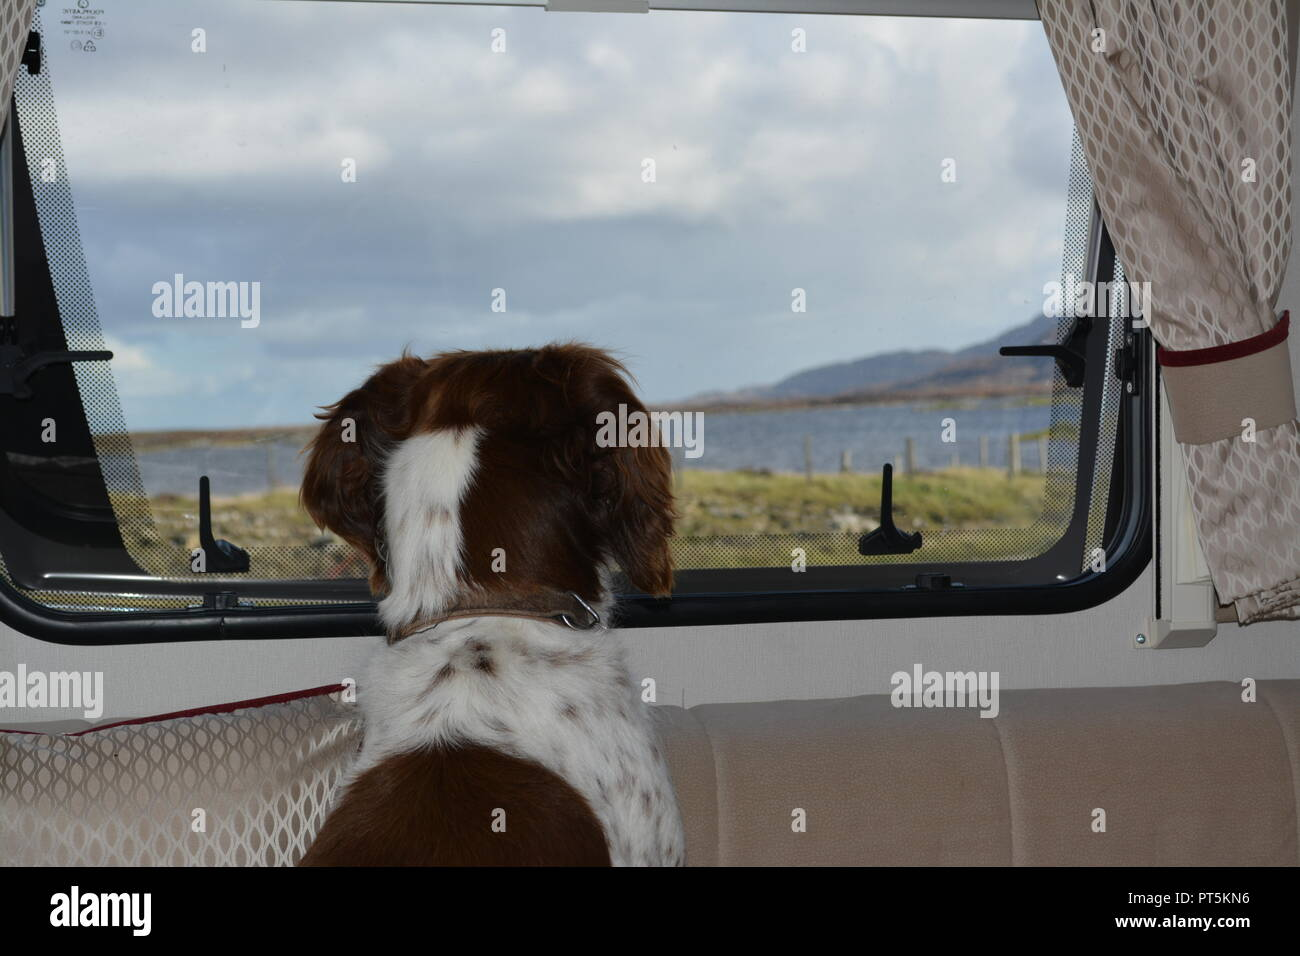 Liver and white English Springer Spaniel sitting and looking out of the window of a motorhome campervan towards a loch in Scotland UK United Kingdom - Stock Image